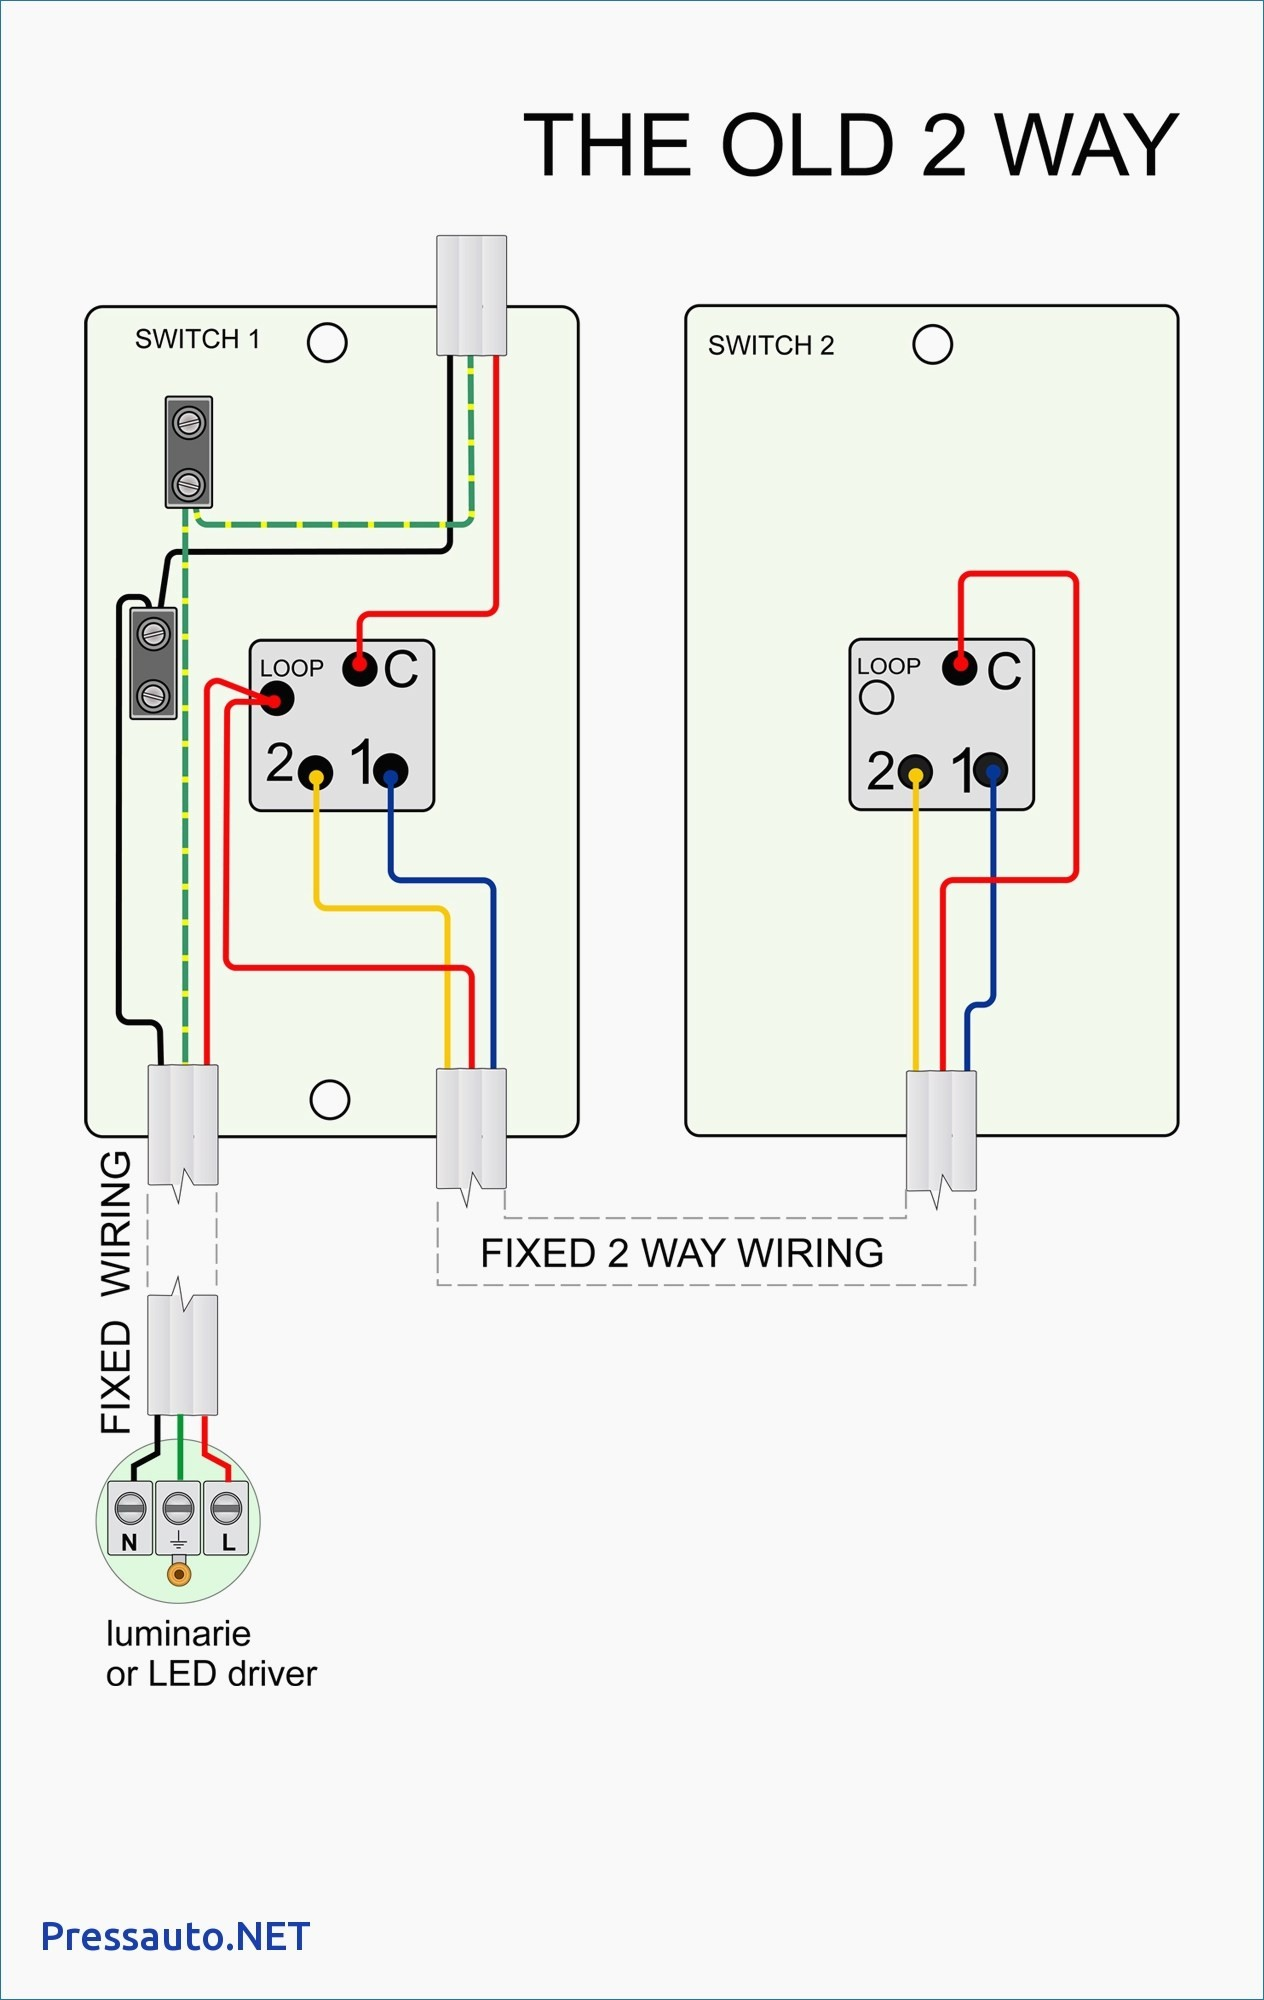 wiring diagram for 2 lights and switches 1998 chevy silverado parts way image